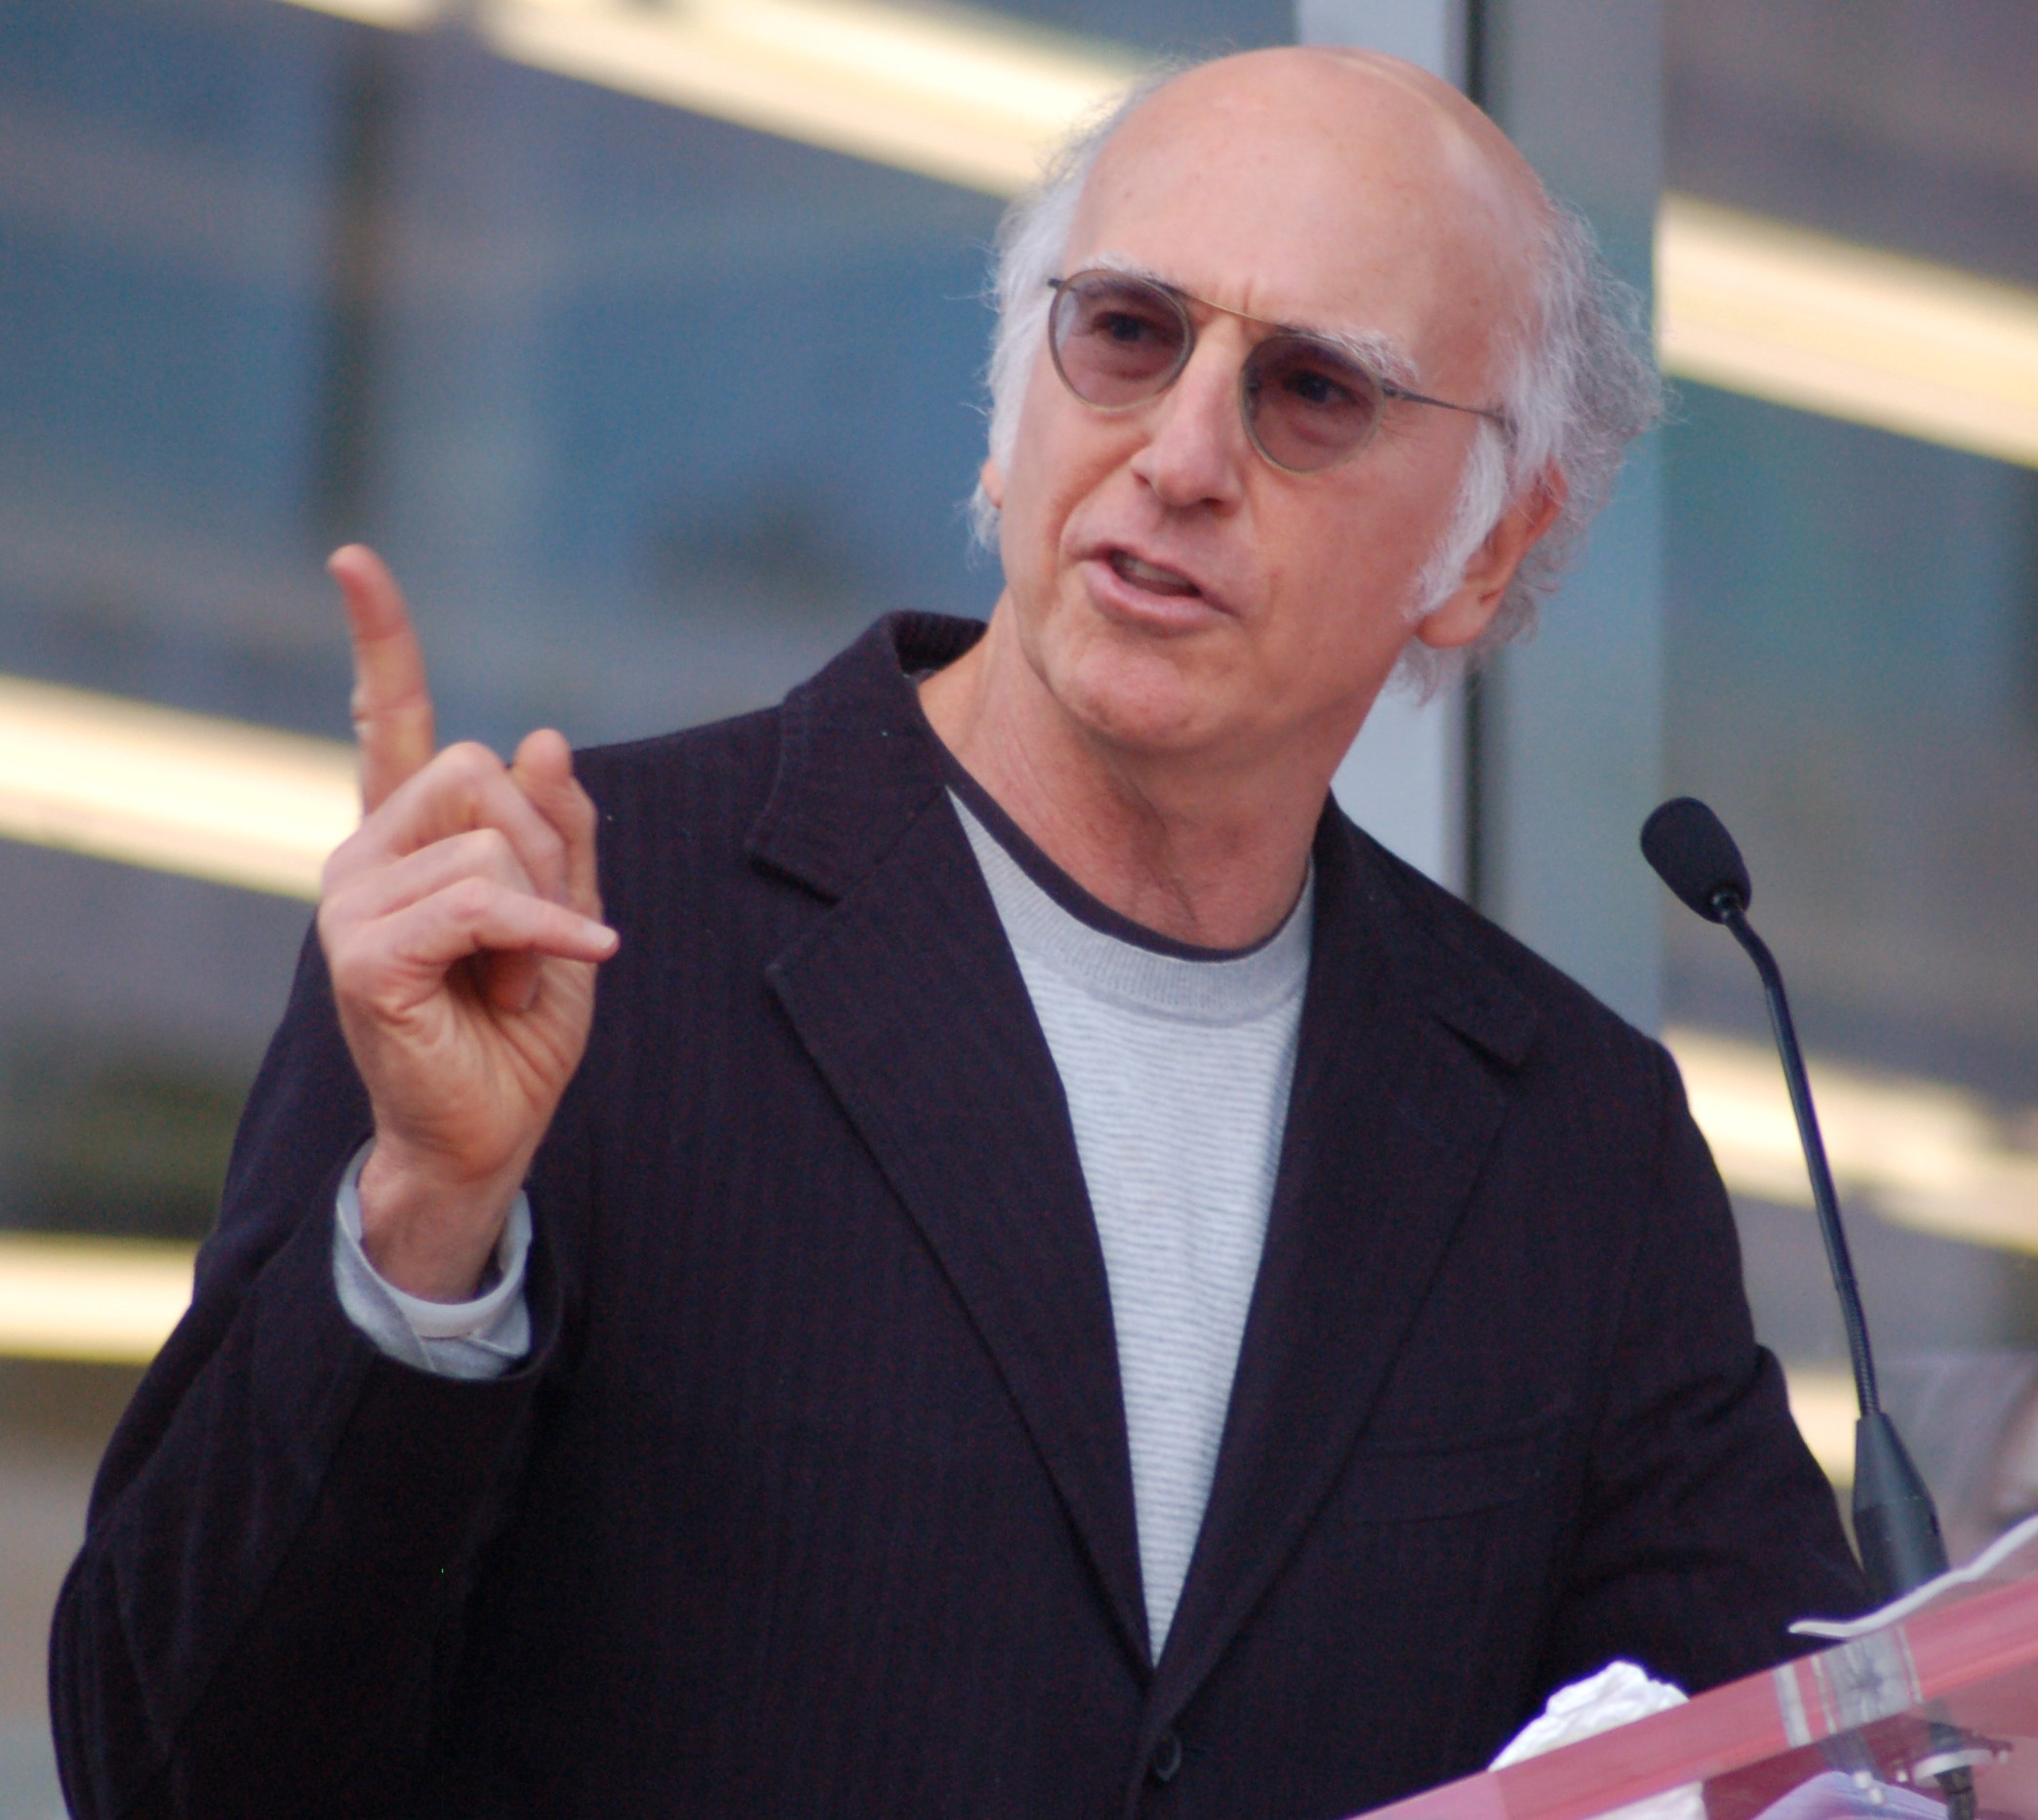 The actor and comedian Larry David